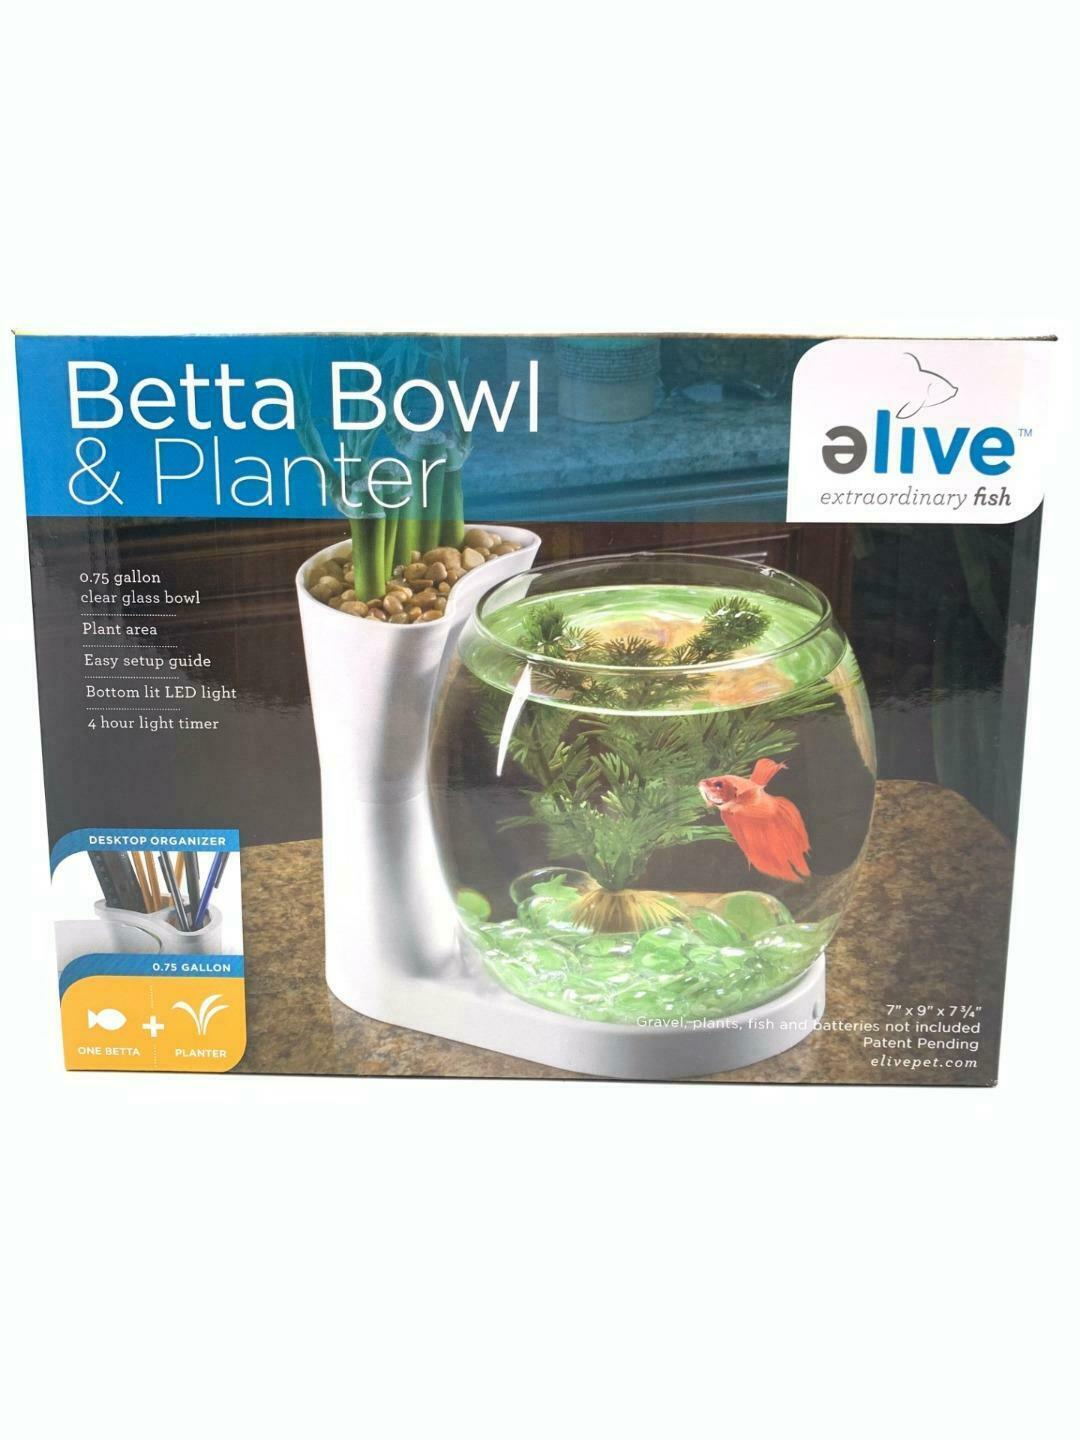 Primary image for Elive Betta Fish Bowl & Planter Set Up Tank Kit White .75 Gallon LED Light Timer